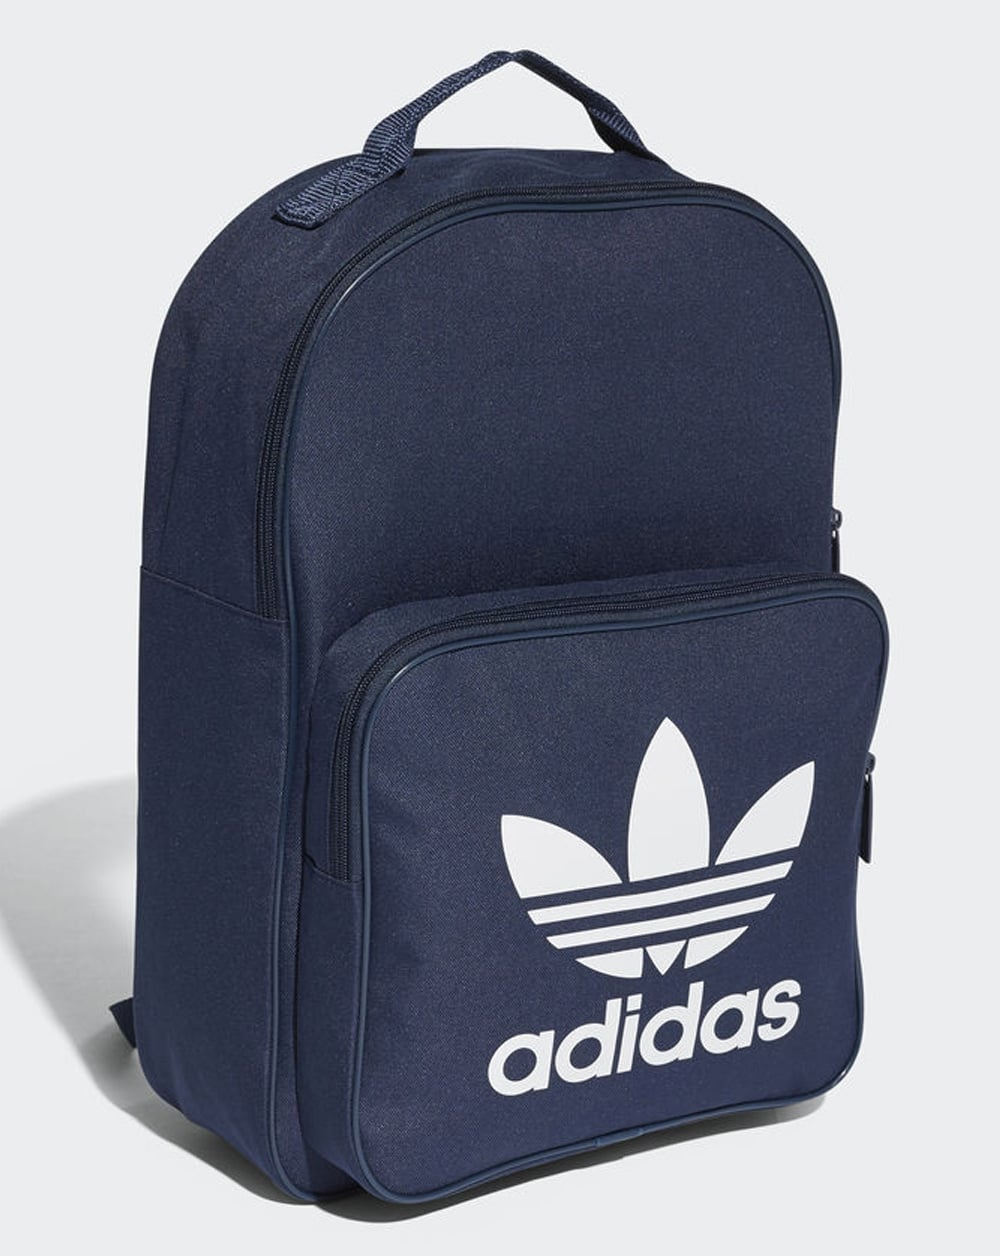 a7d23ab6c Adidas Originals Classic Trefoil Backpack Navy, padded, laptop pocket